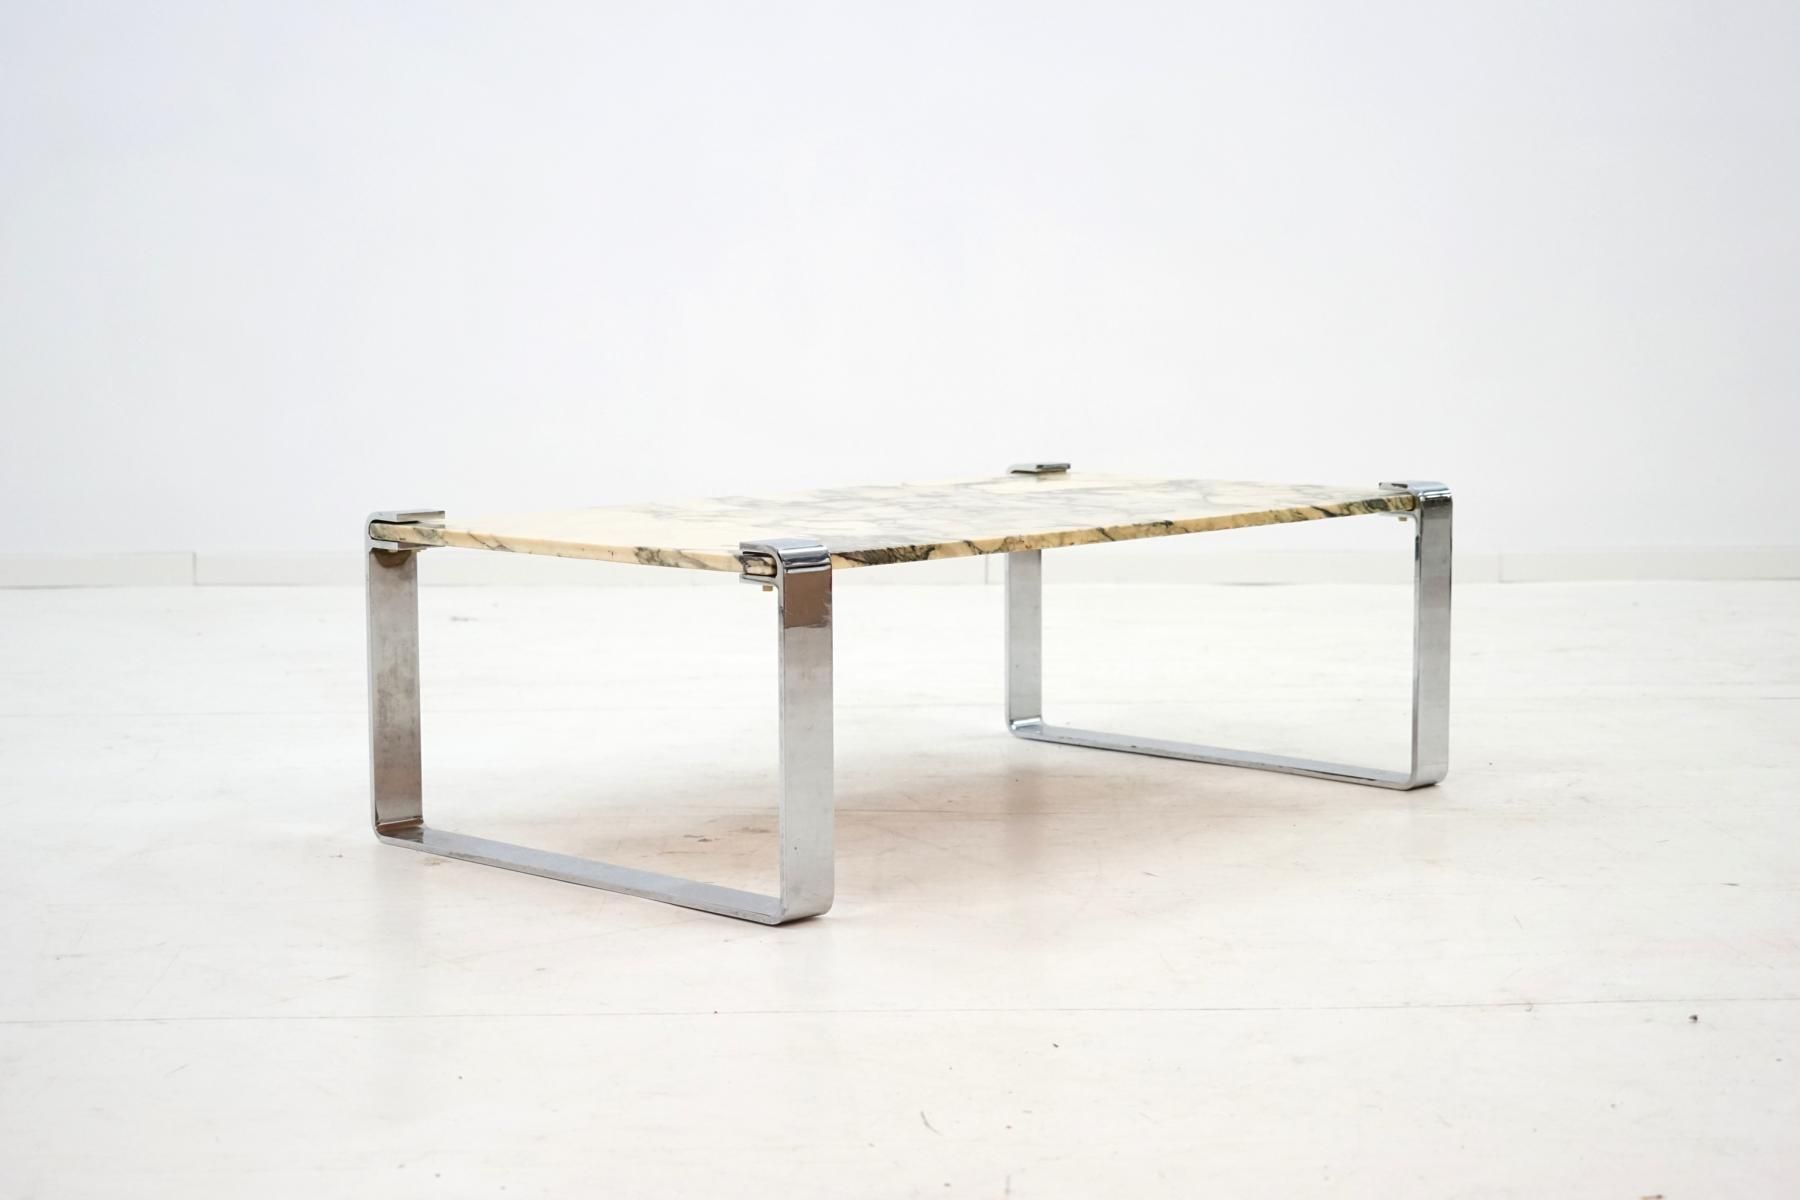 Marble chrome coffee table by peter draenert 1970s for sale at marble chrome coffee table by peter draenert 1970s for sale at pamono geotapseo Image collections